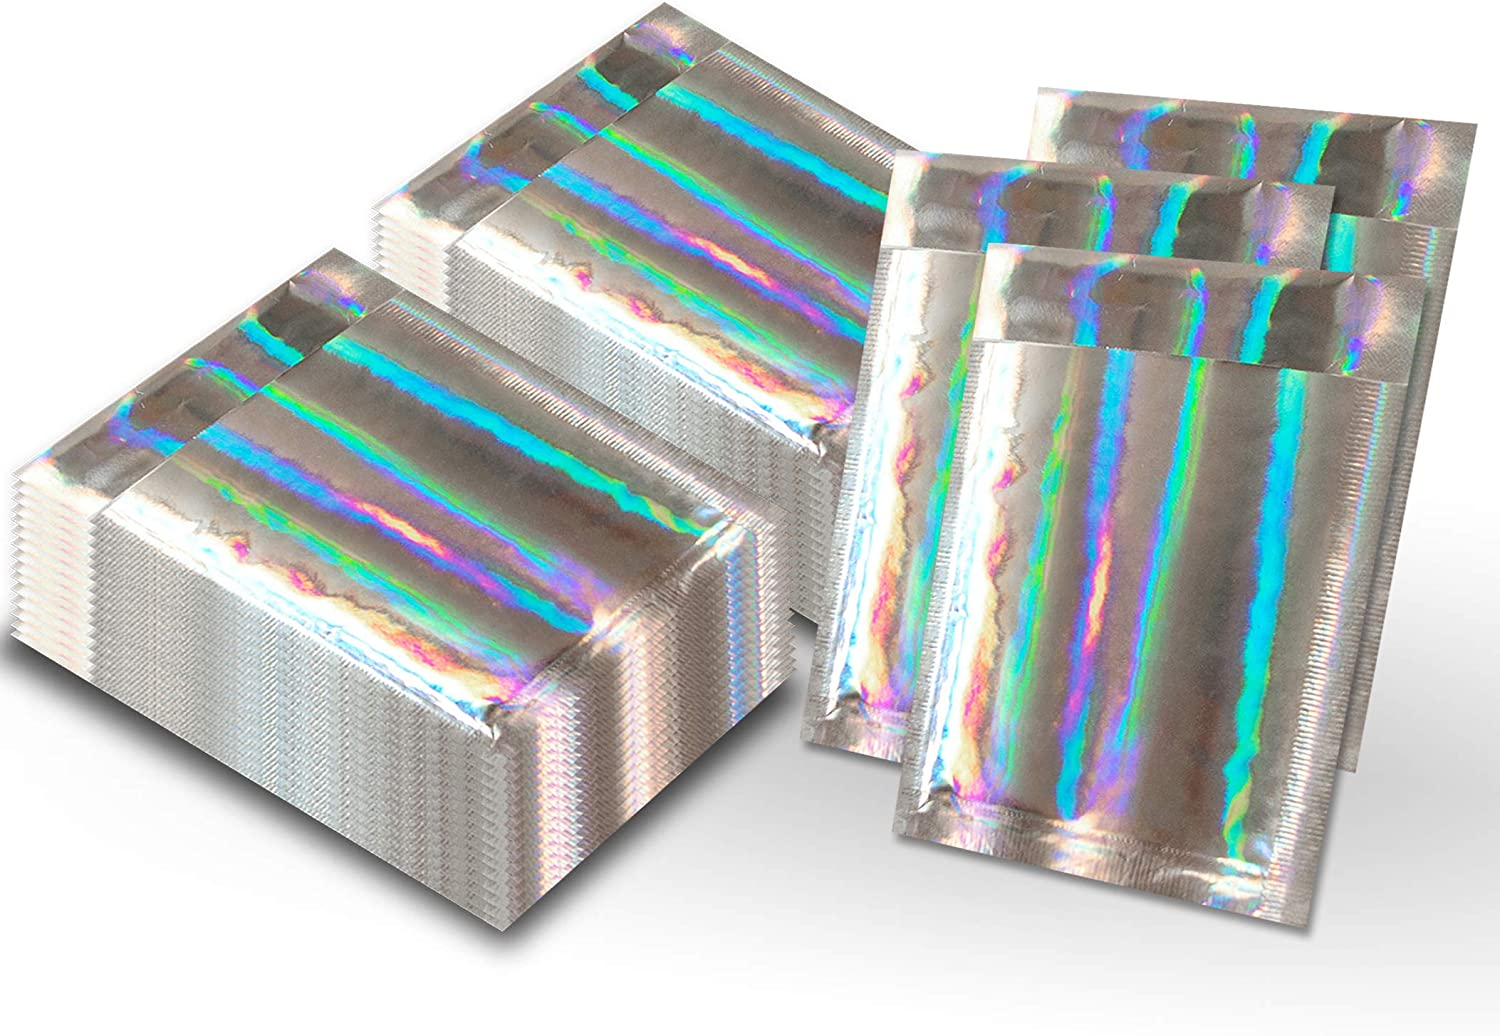 4x8 Metallic Bubble Mailers Padded Shipping Envelopes Mirrored Hologram Combo Poly Teal Polka dot 60 Pack